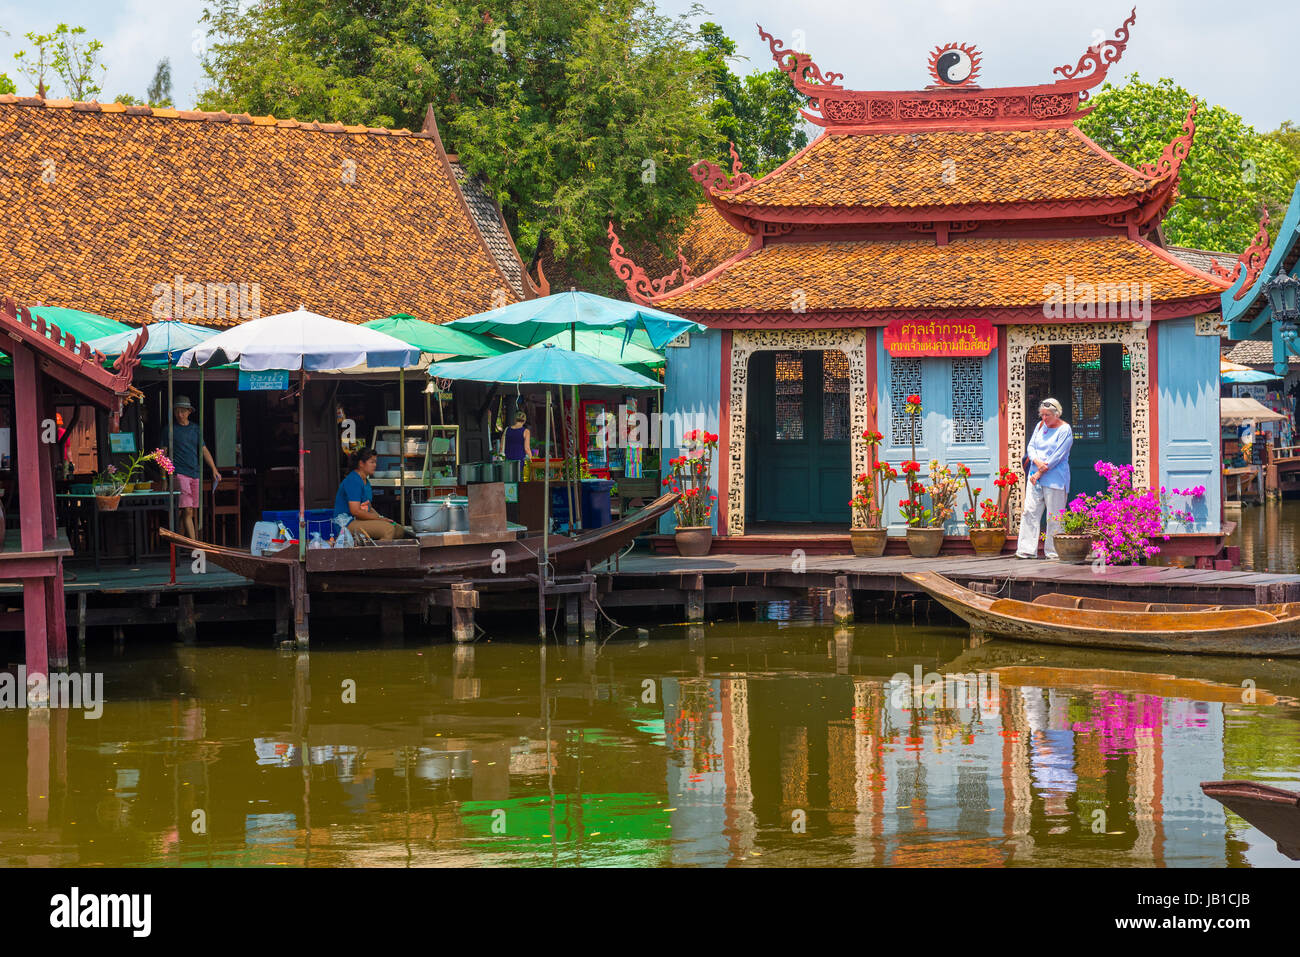 Laem Chabang, Thailand -- March 16, 2016 -- Tourists shopping in a water market in Thailand. Editorial Use Only. Stock Photo